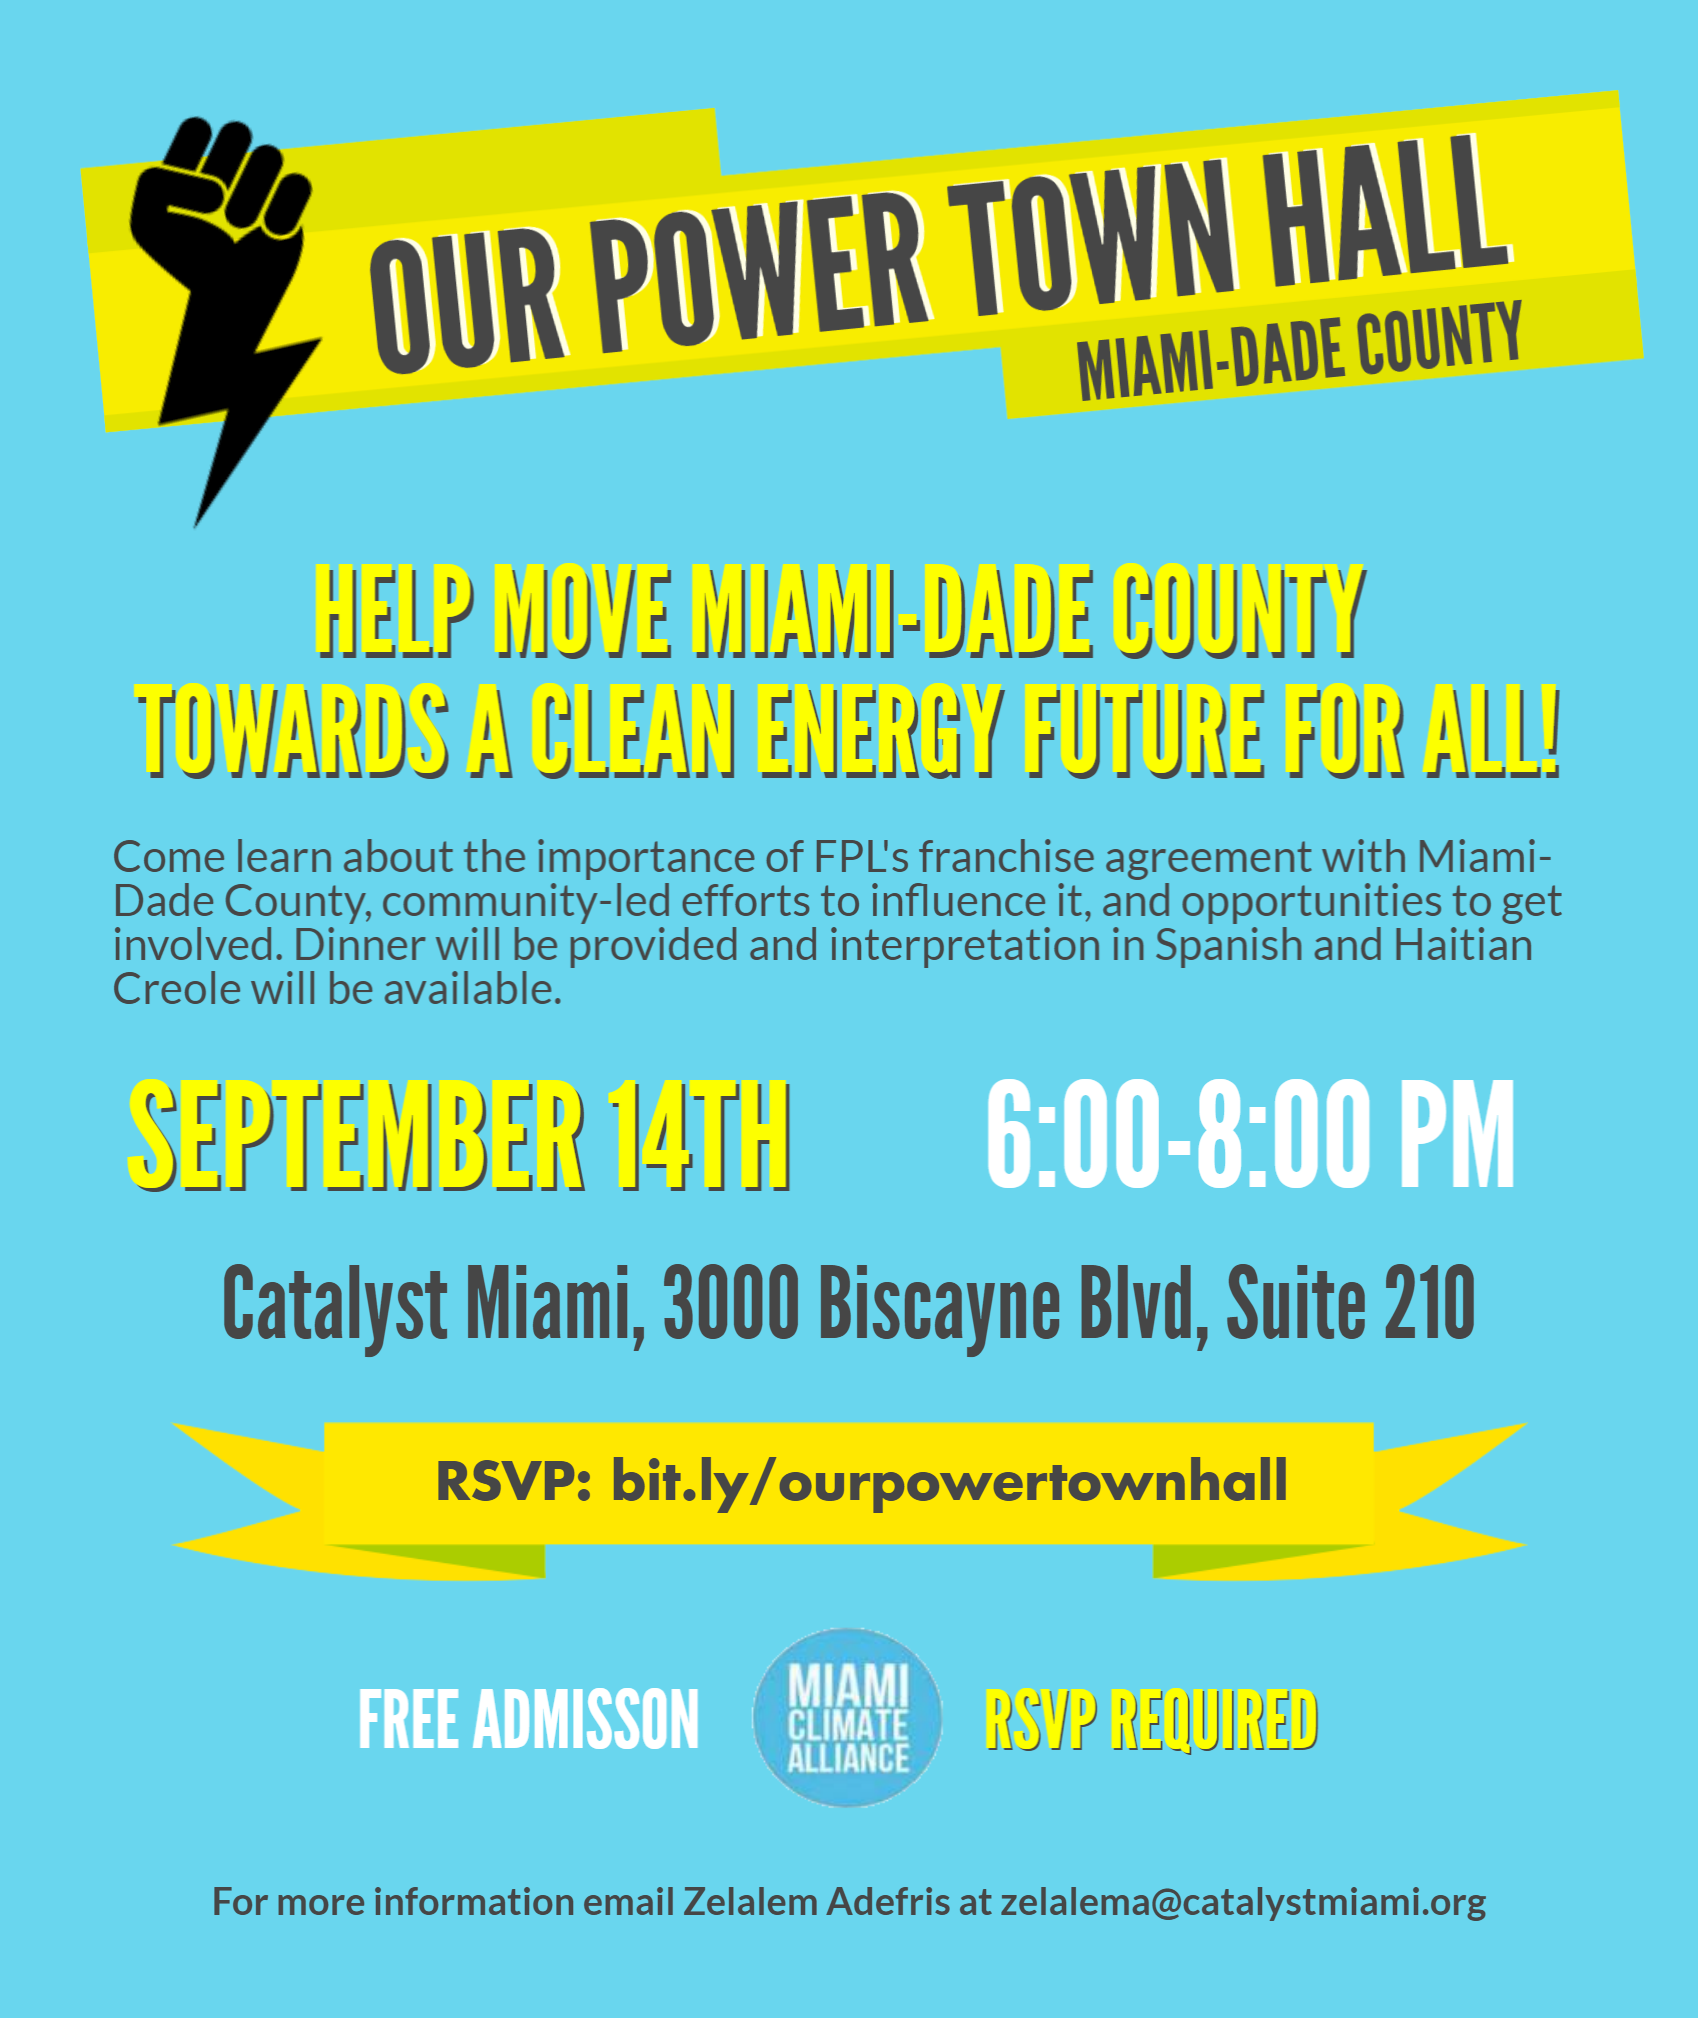 Our Power Town Hall Flyer